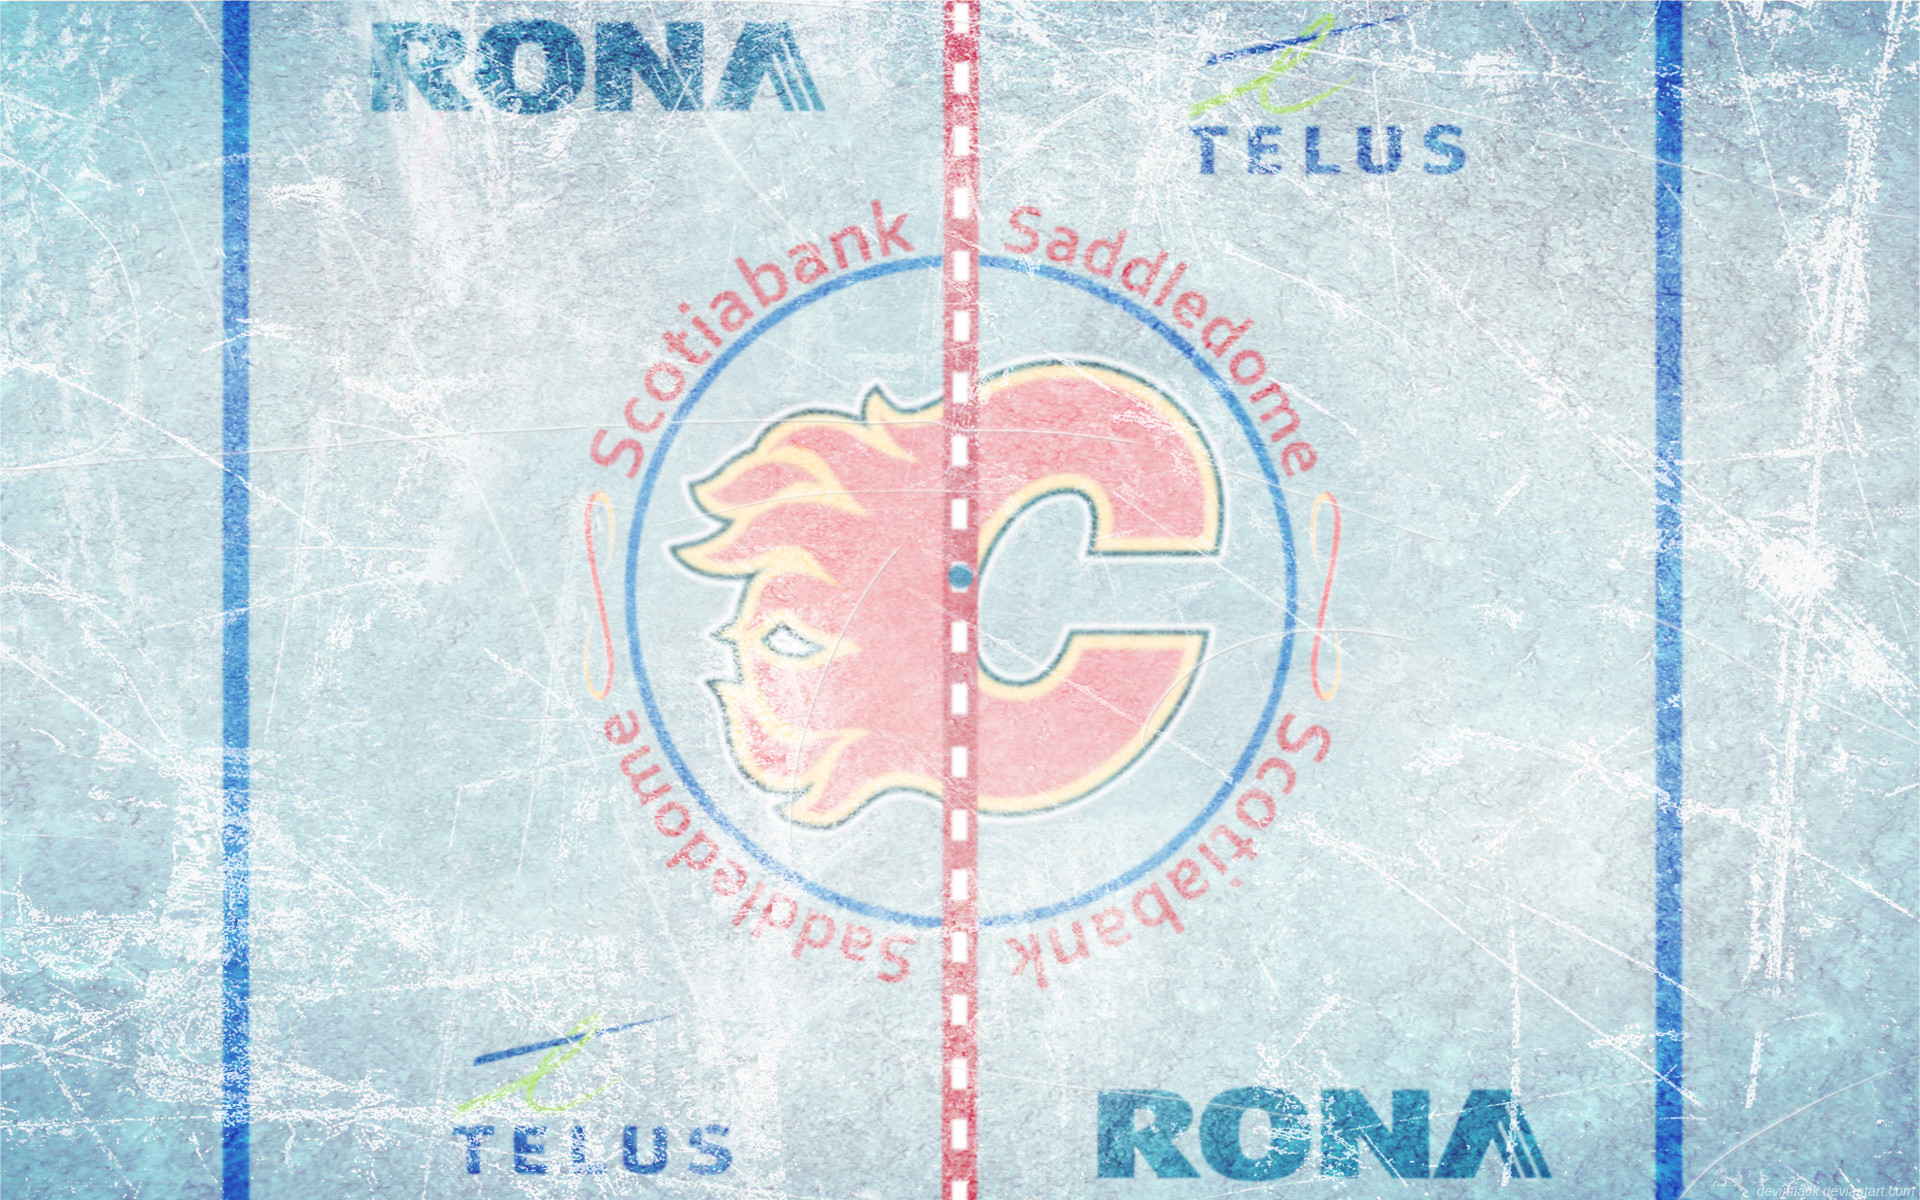 1920x1200 DevinFlack 5 2 Scotiabank Saddledome Ice Wallpaper by DevinFlack